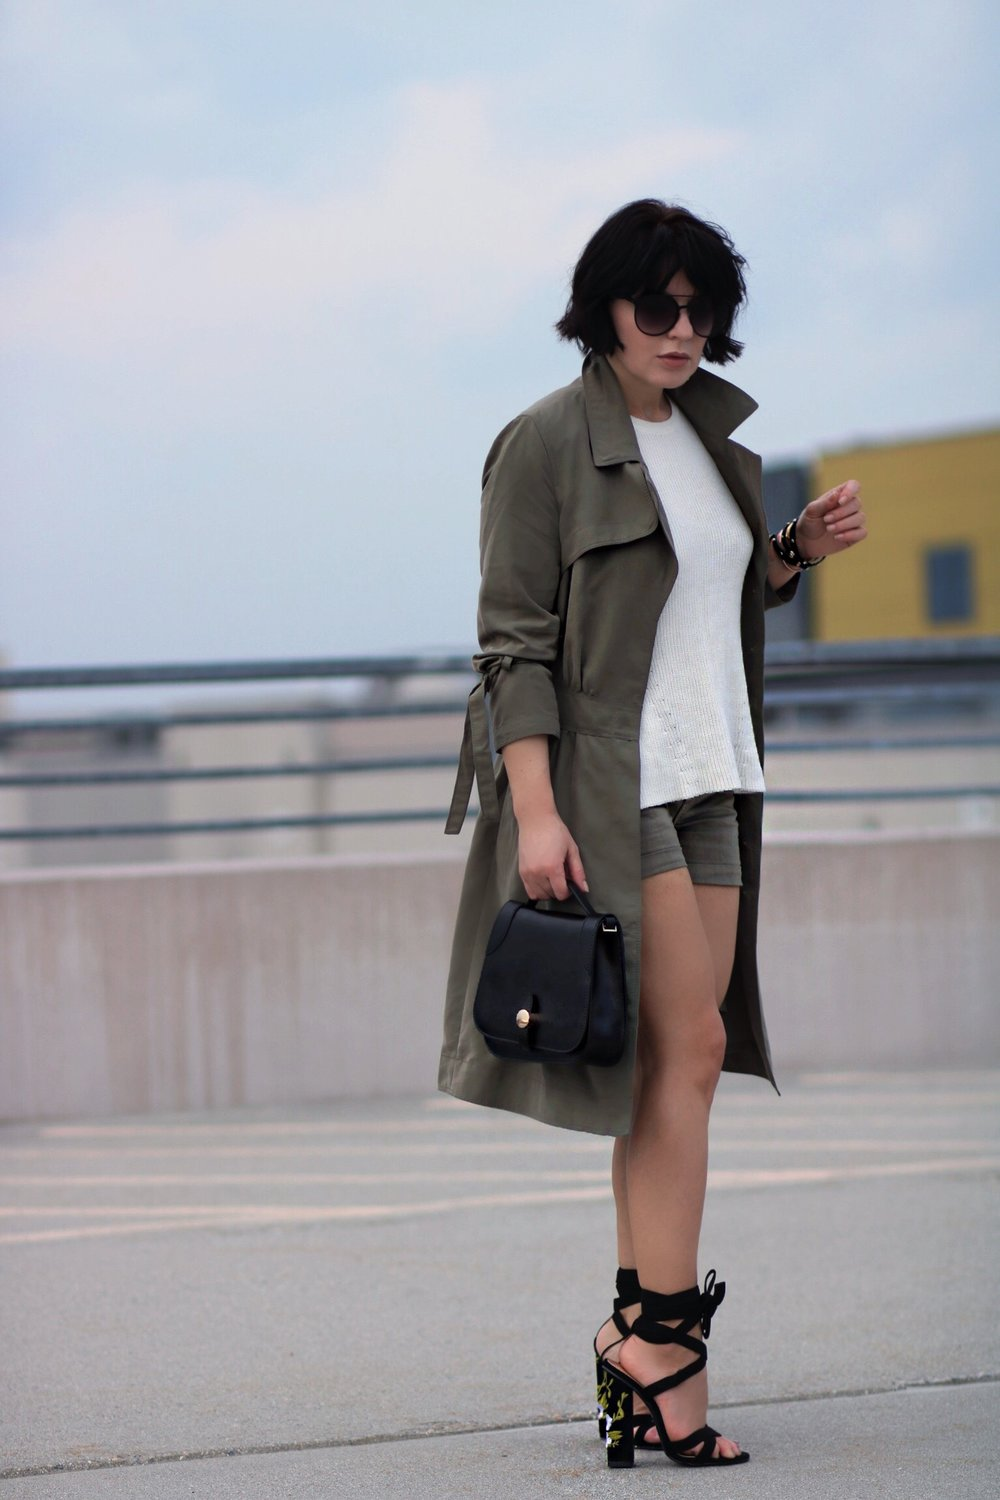 khaki shorts trench outfit streetstyle